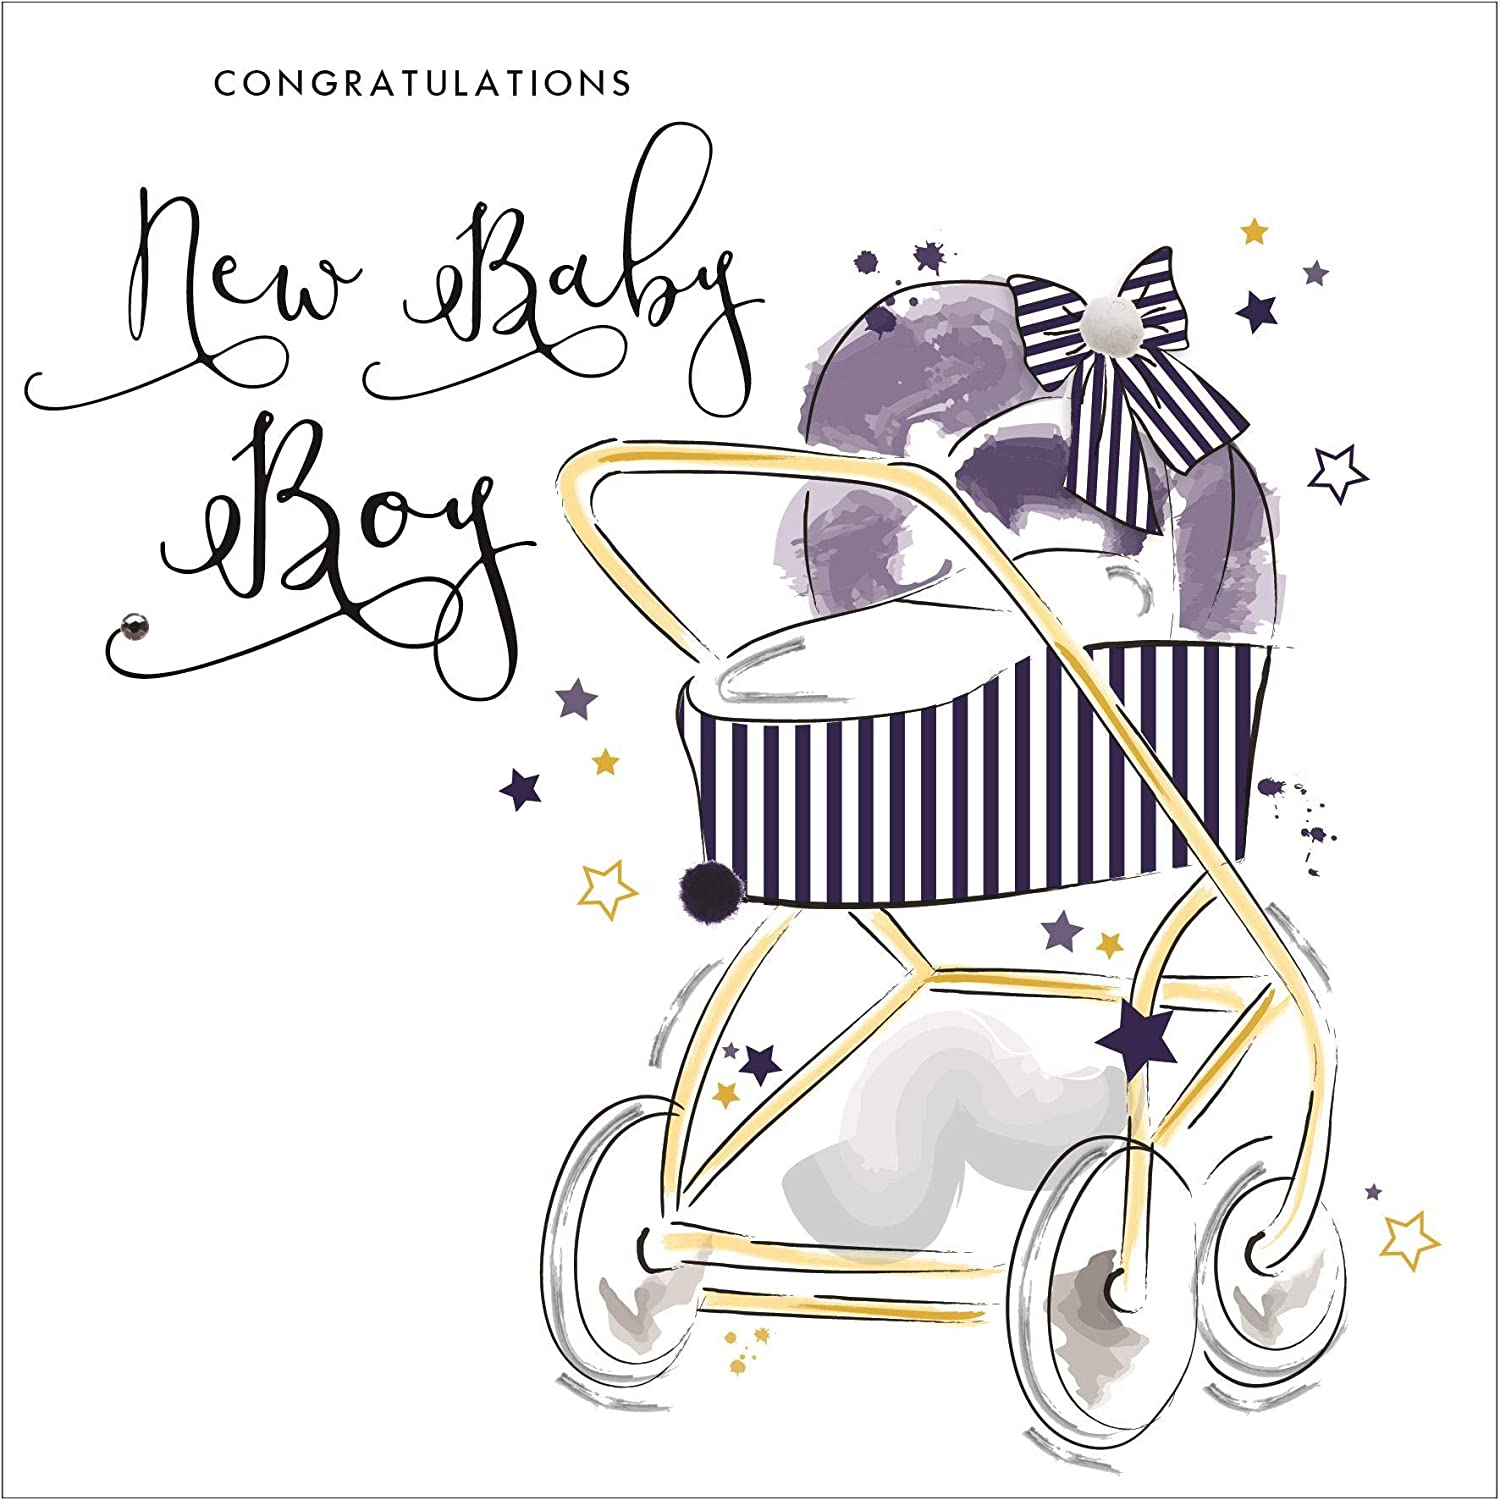 promotional items Congratulations, New Baby Boy   Handfinished ...